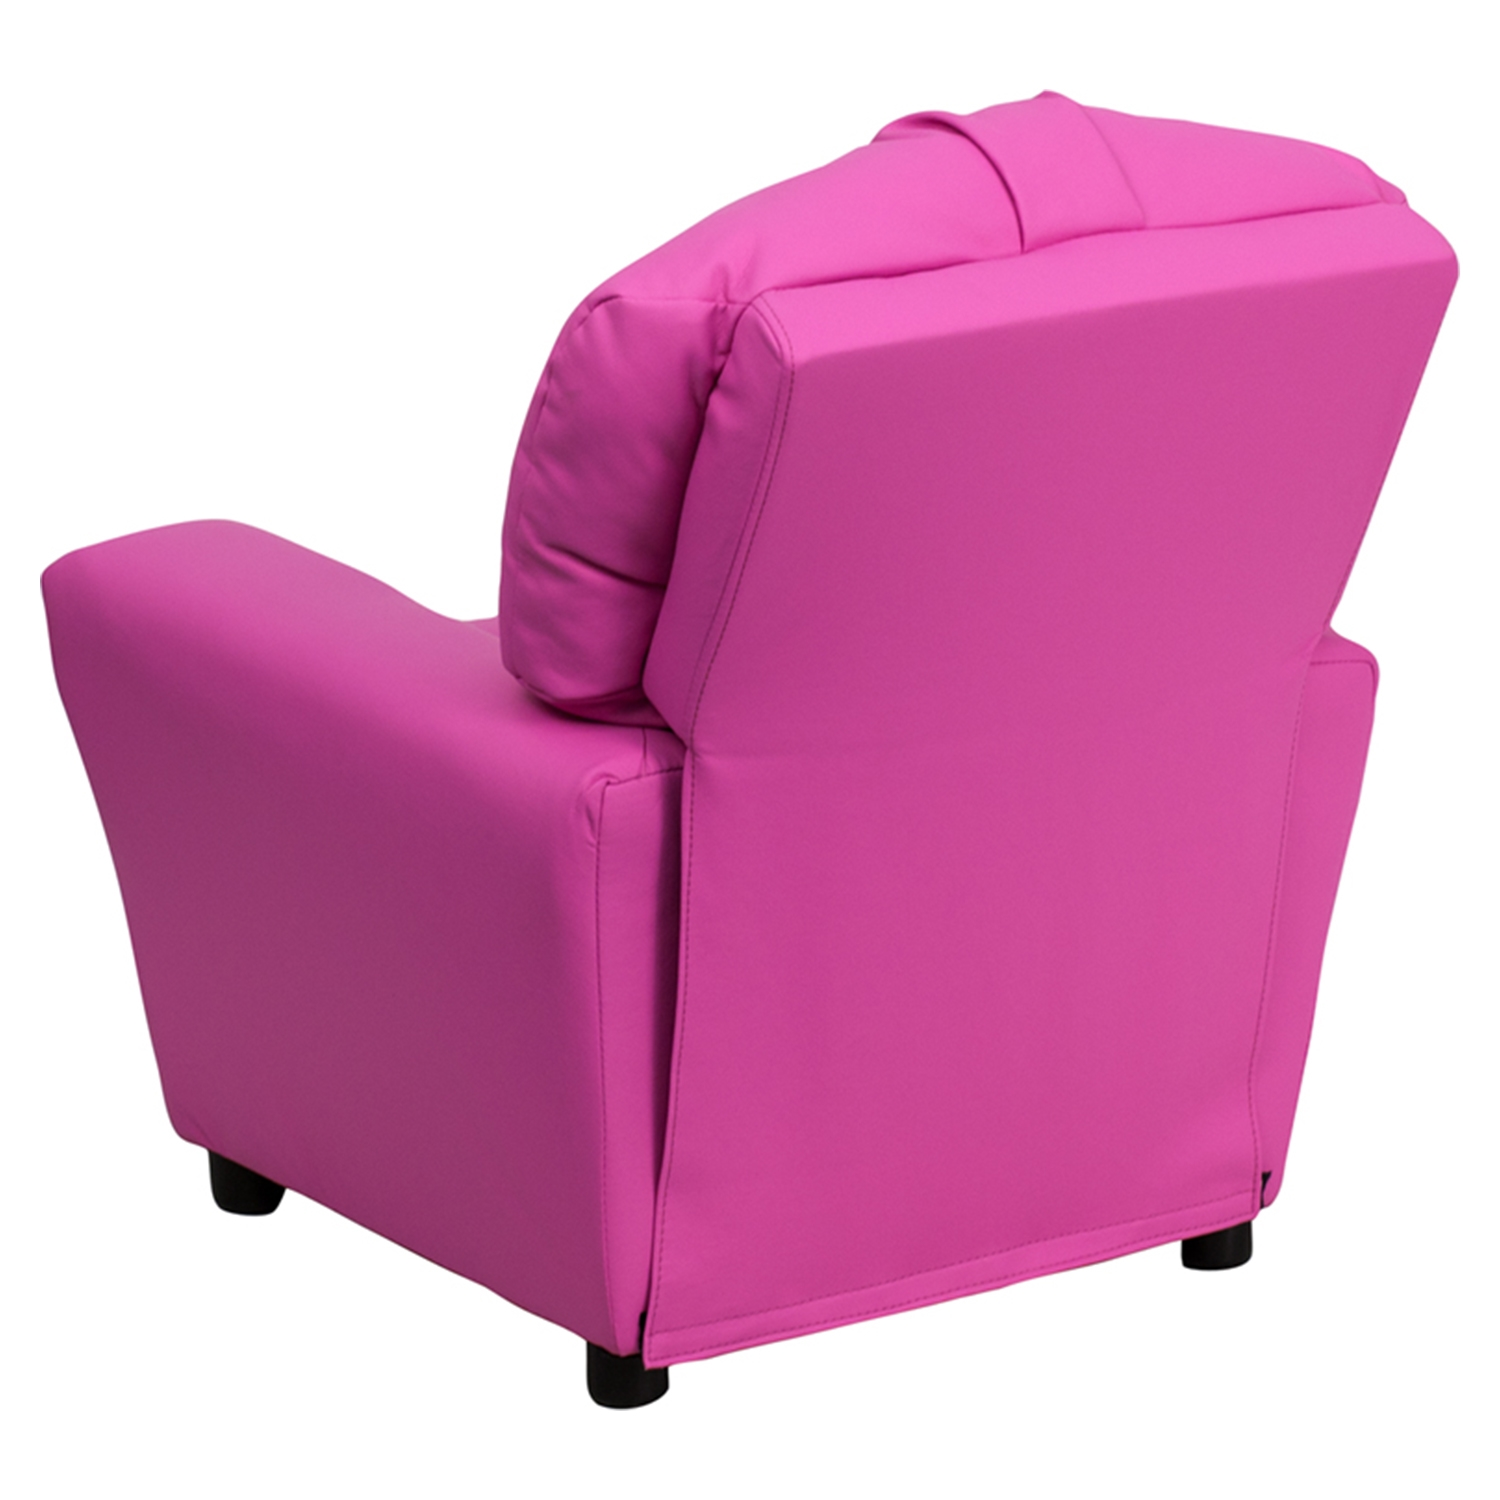 kid recliner chair ak rocker gaming upholstered kids cup holder hot pink dcg stores flsh bt 7950